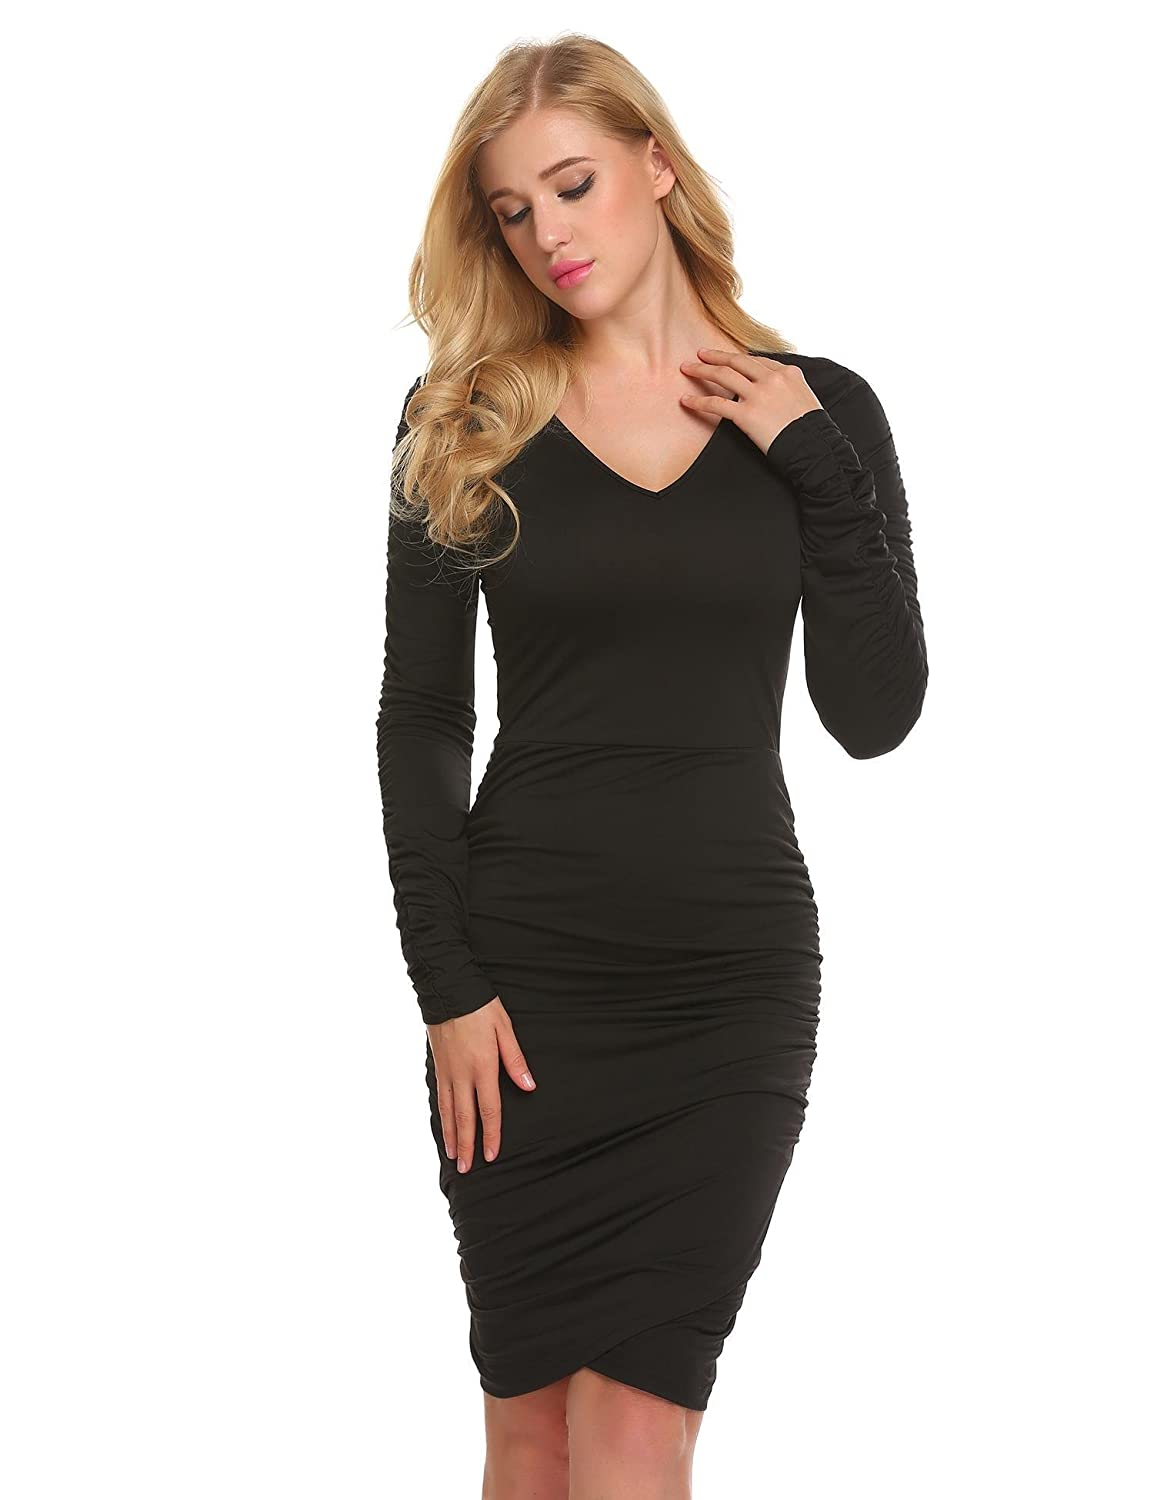 70db07463f151 Bifast Womens Fall Winter Long Sleeve V Neck Ruched Cotton Elegant Bodycon  Wrap Party Cocktail Dress S-XL at Amazon Women's Clothing store: